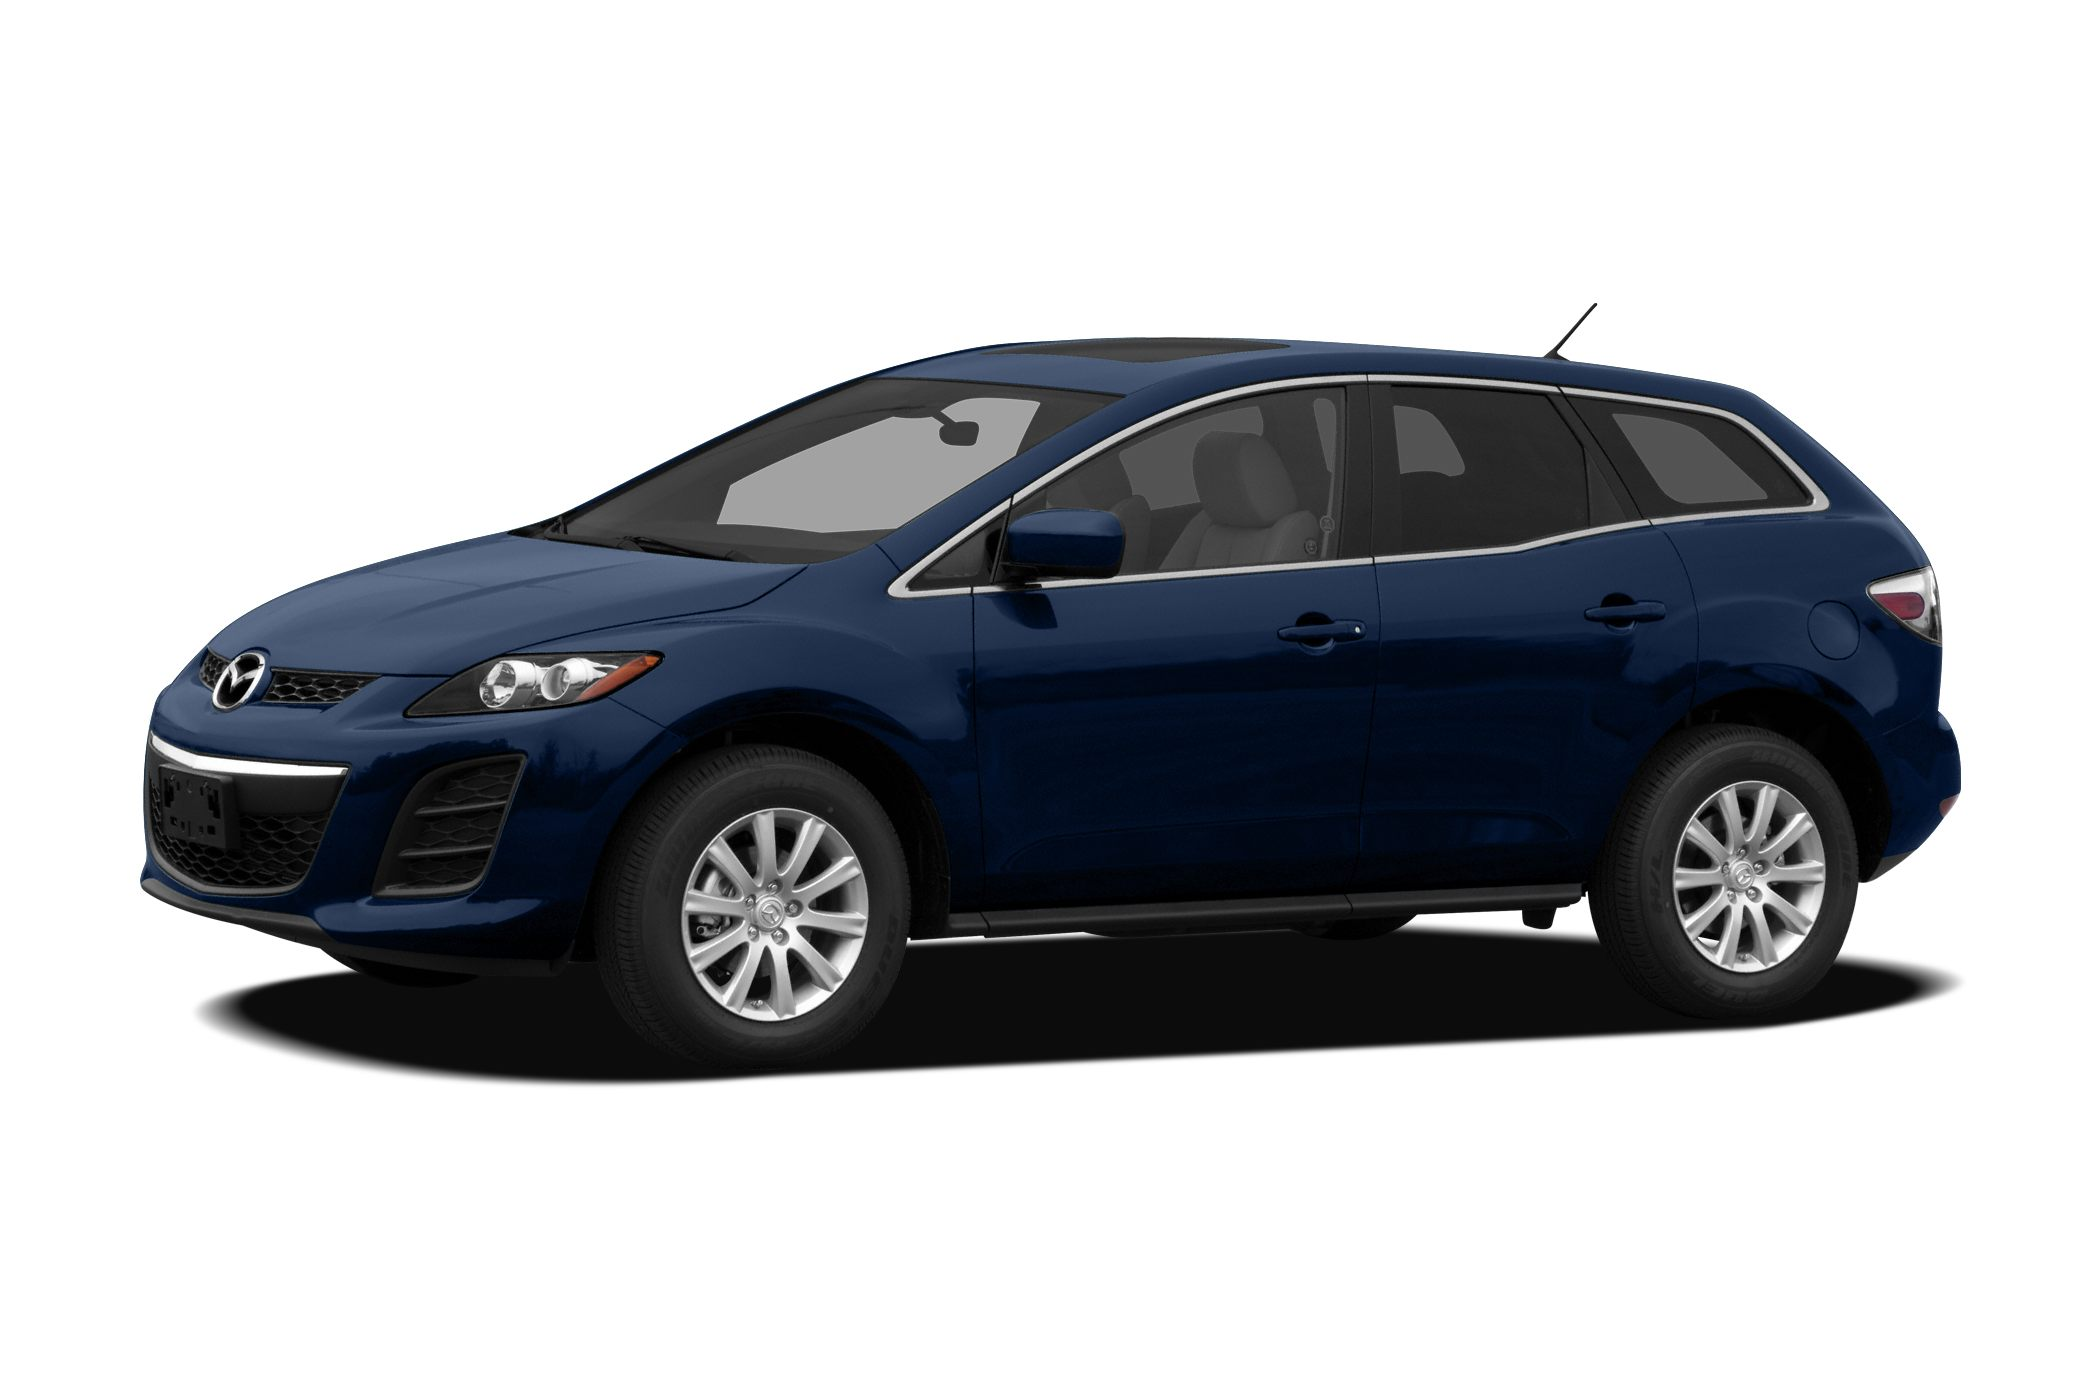 mazda recalling 190 000 cx 7s due to rusty ball joints autoblog. Black Bedroom Furniture Sets. Home Design Ideas